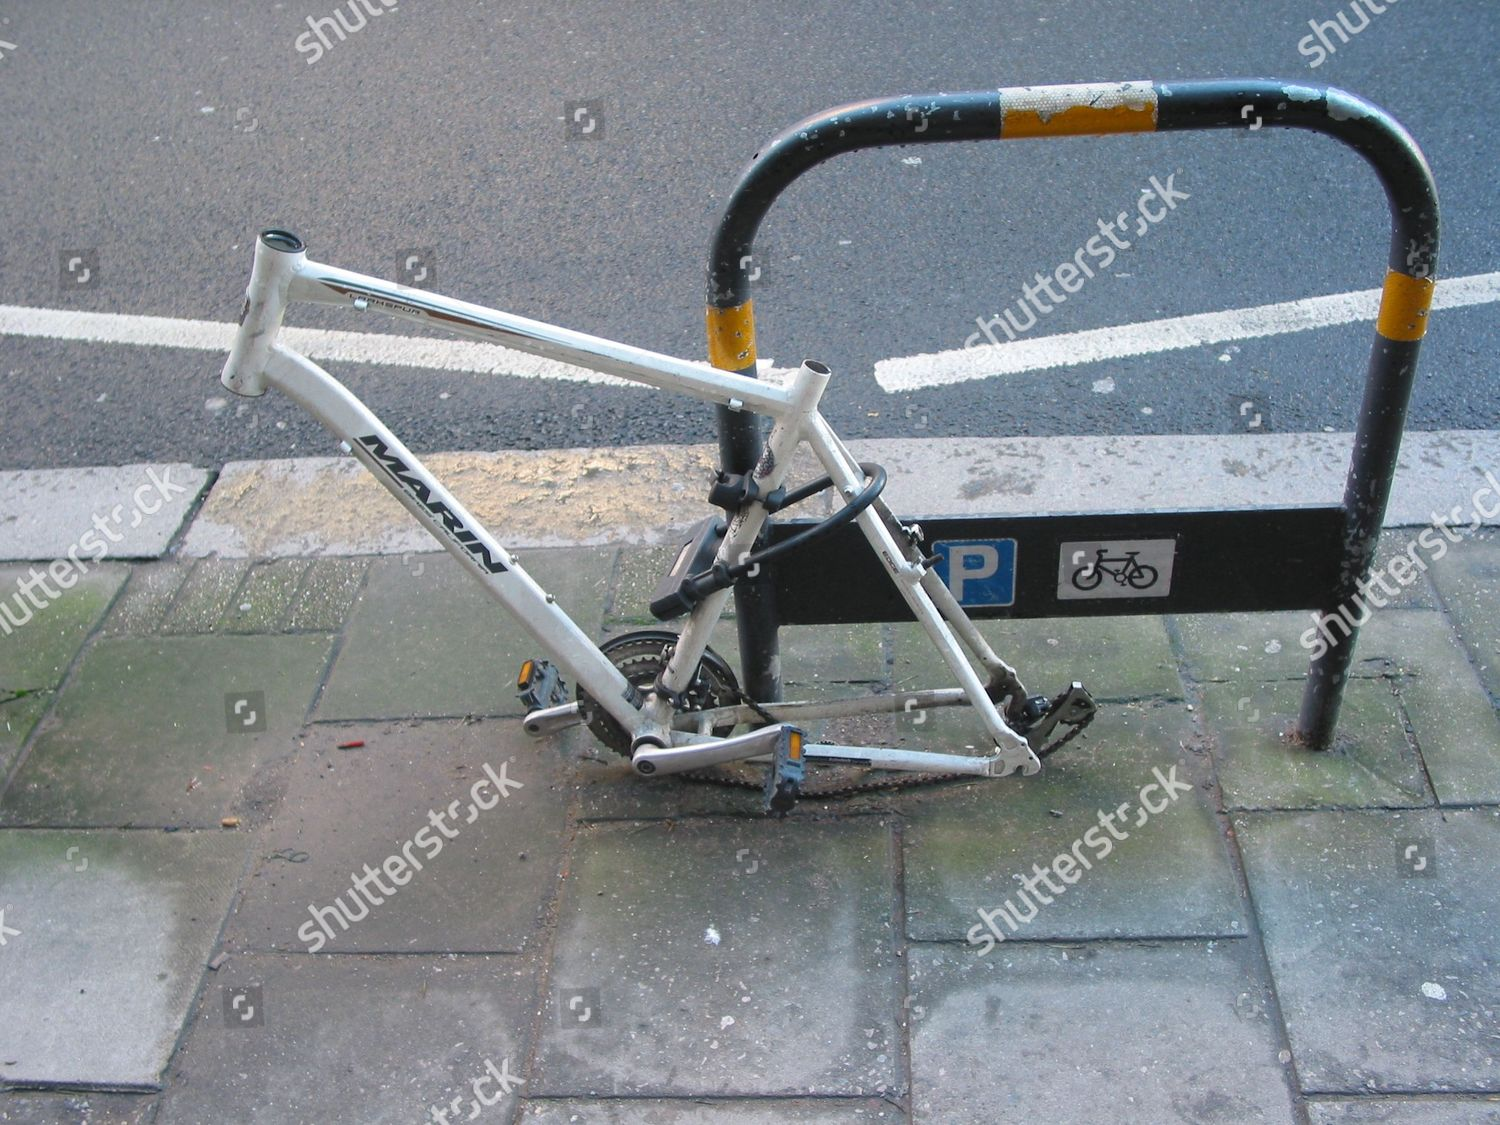 Bicycle Locked Bike Stand Stripped Parts By Editorial Stock Photo